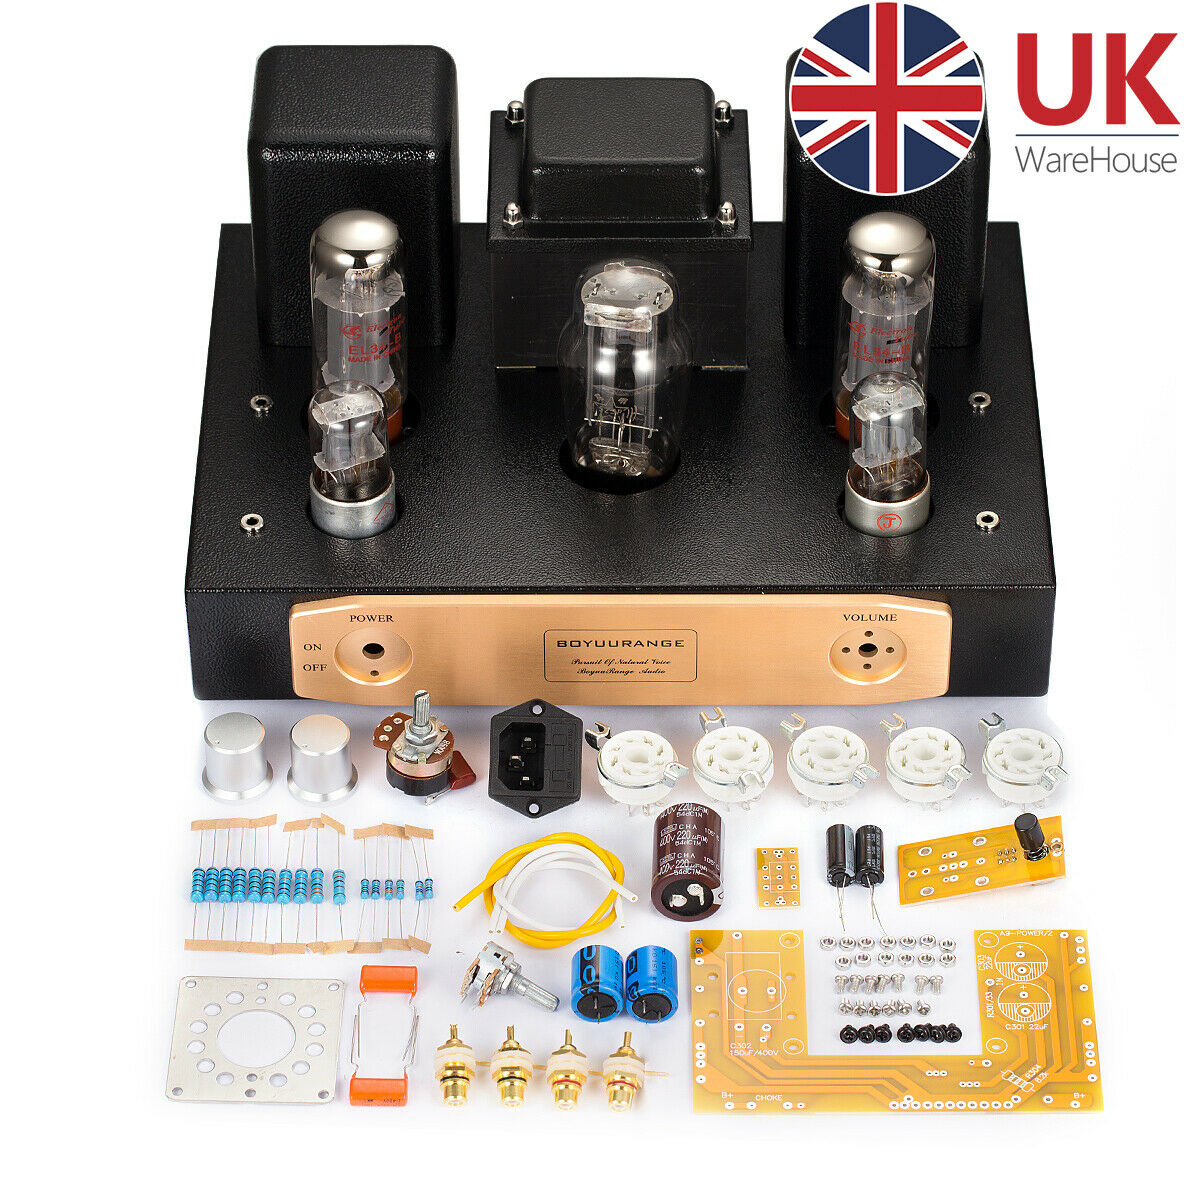 El34 Valve Tube Amplifier Single Ended Classa Hifi Stereo Amp Diy 20w Power With 1 Of 8only 2 Available